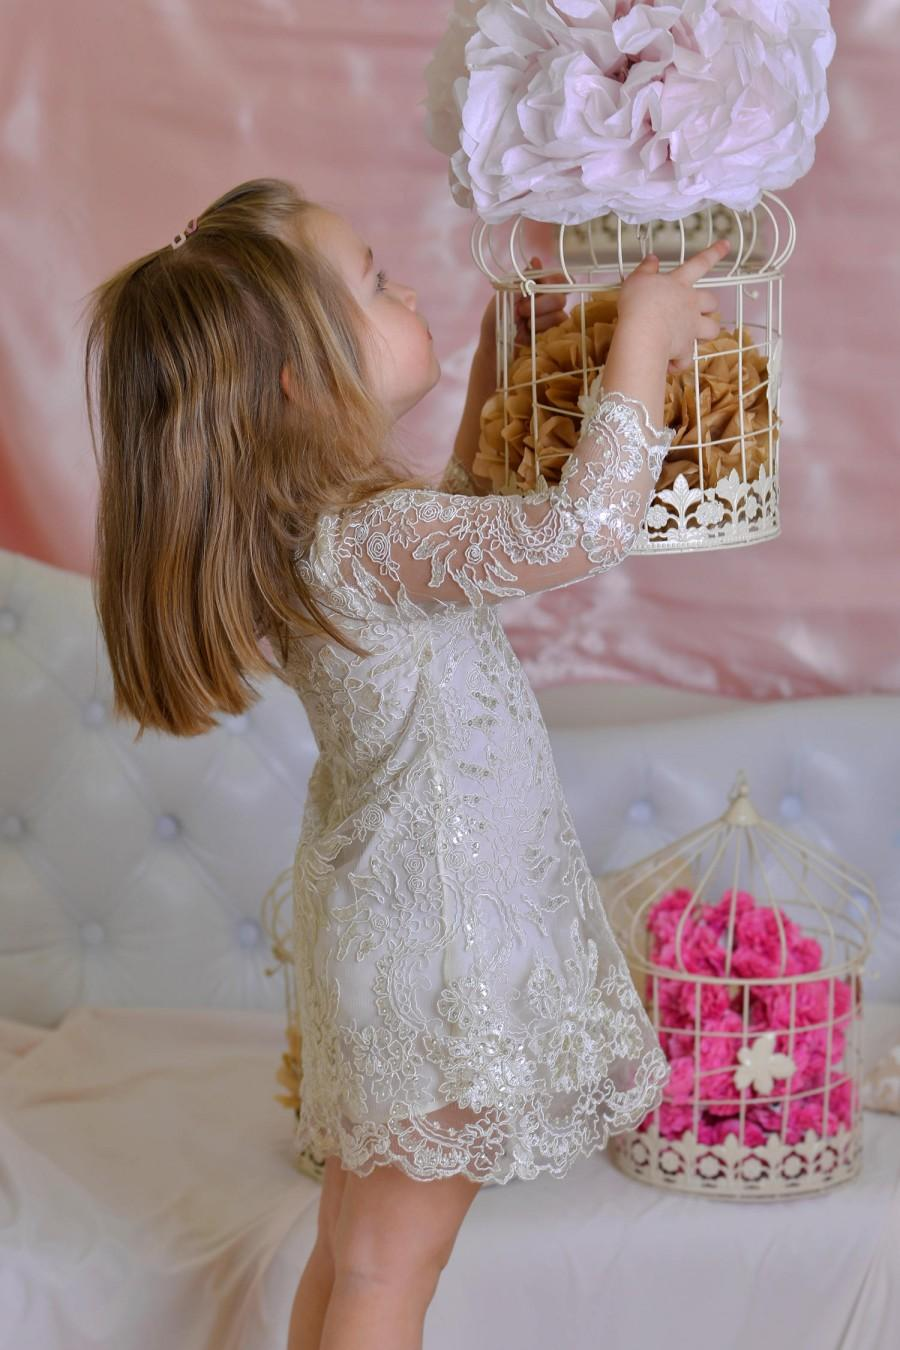 Long sleeve bridesmaid dress floral embroidery lace attending long sleeve bridesmaid dress floral embroidery lace attending wedding dress lace toddler maid of honor dress sequins bridesmaid gown lace ombrellifo Images